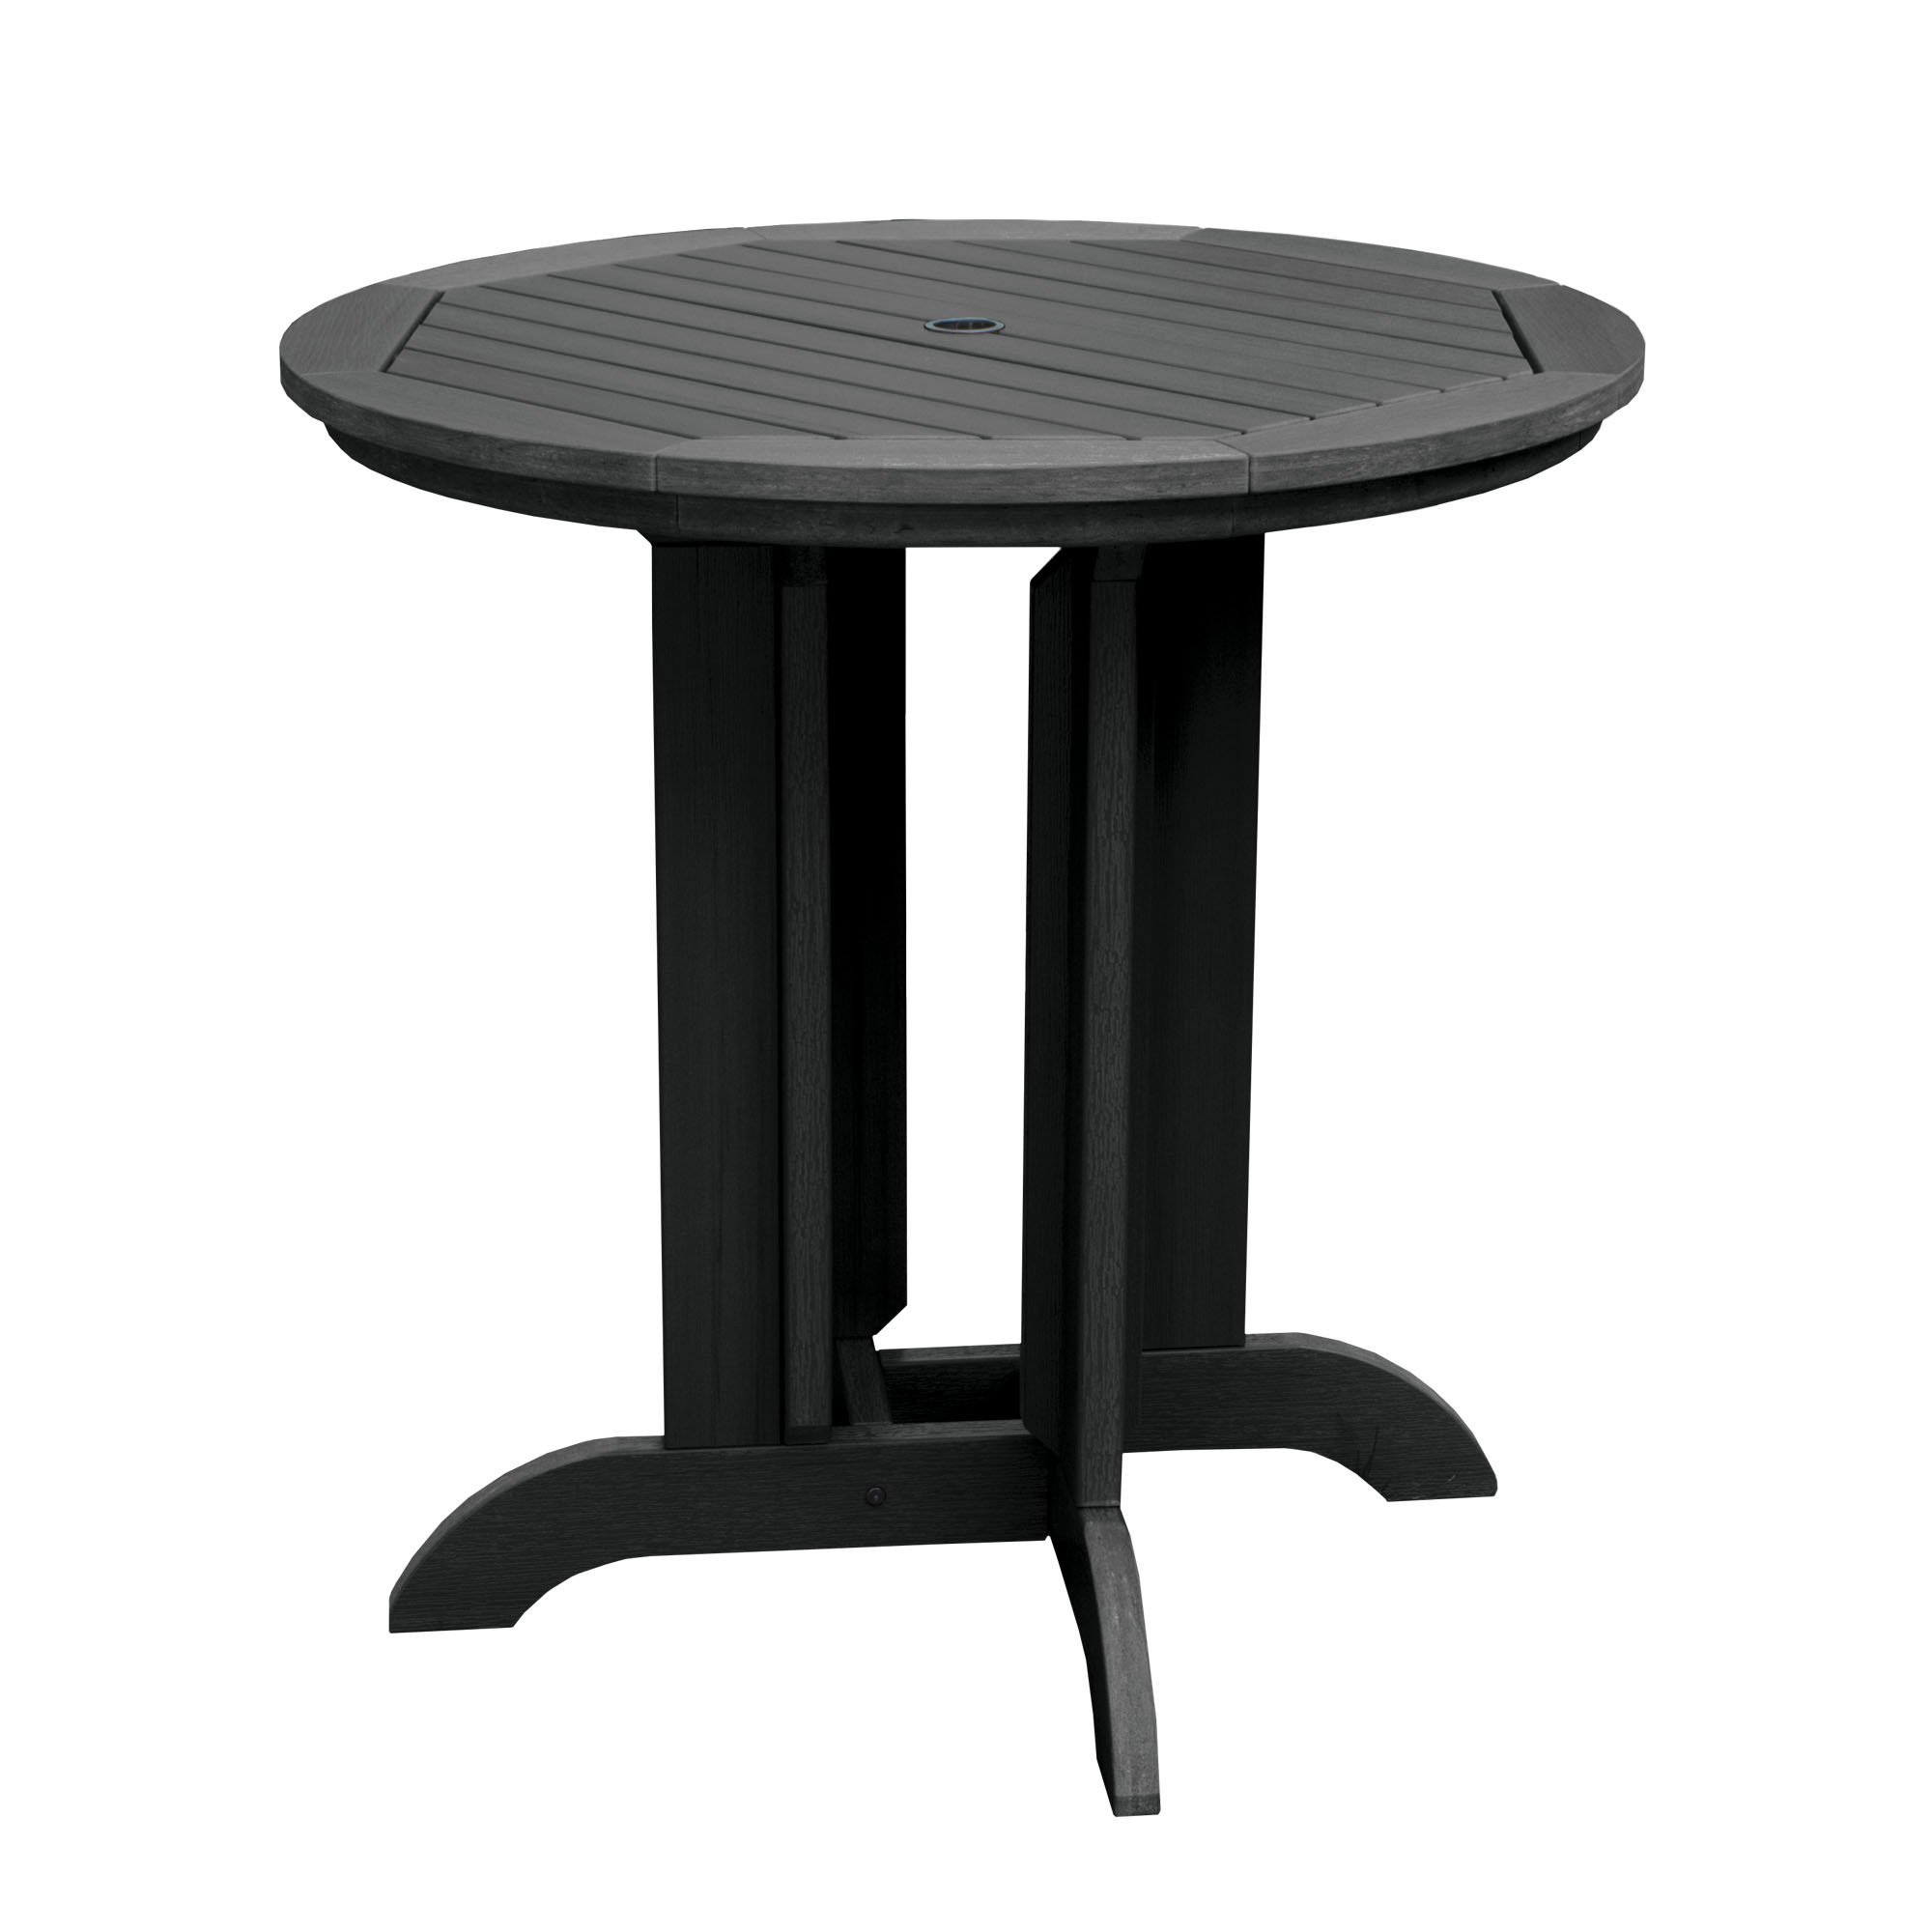 "Highwood Adirondack Round Counter Height Dining Table, 36"", Black"